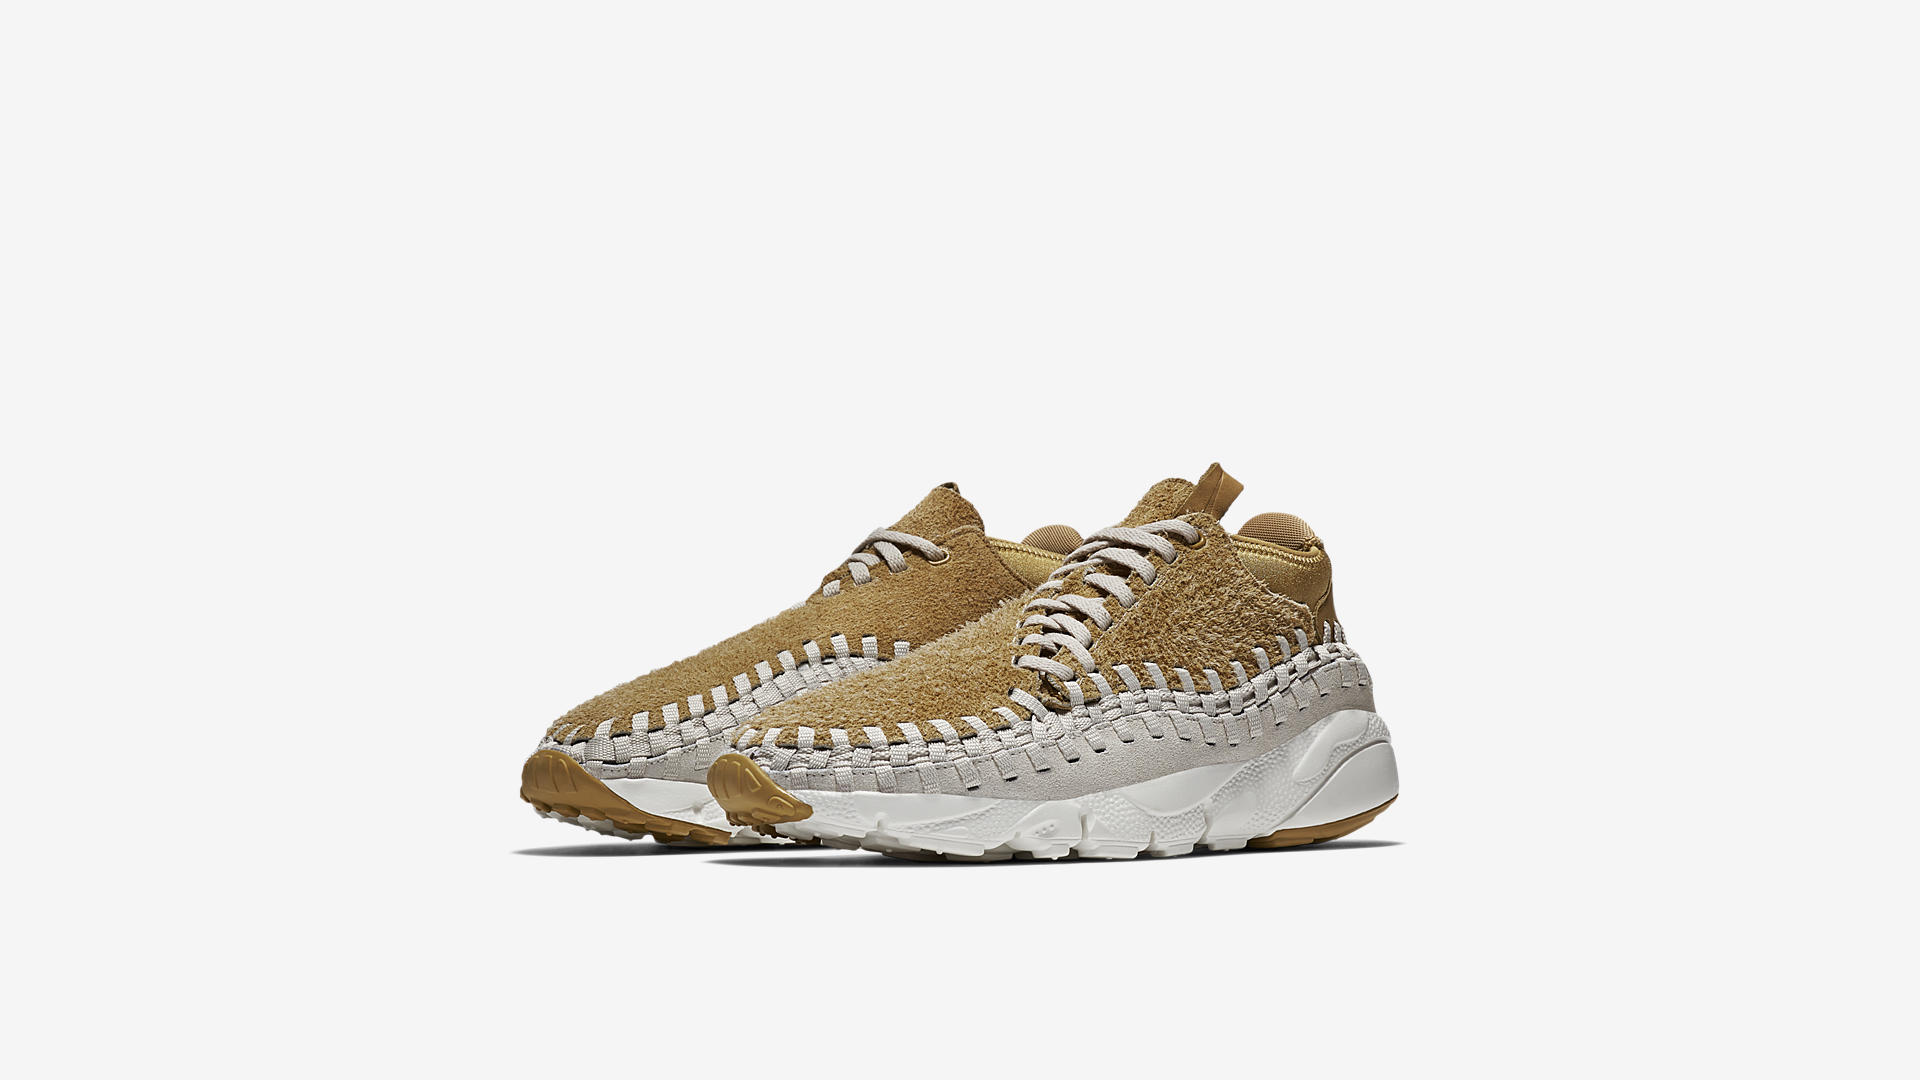 Nike Air Footscape Woven Chukka Flat Gold 913929 700 1